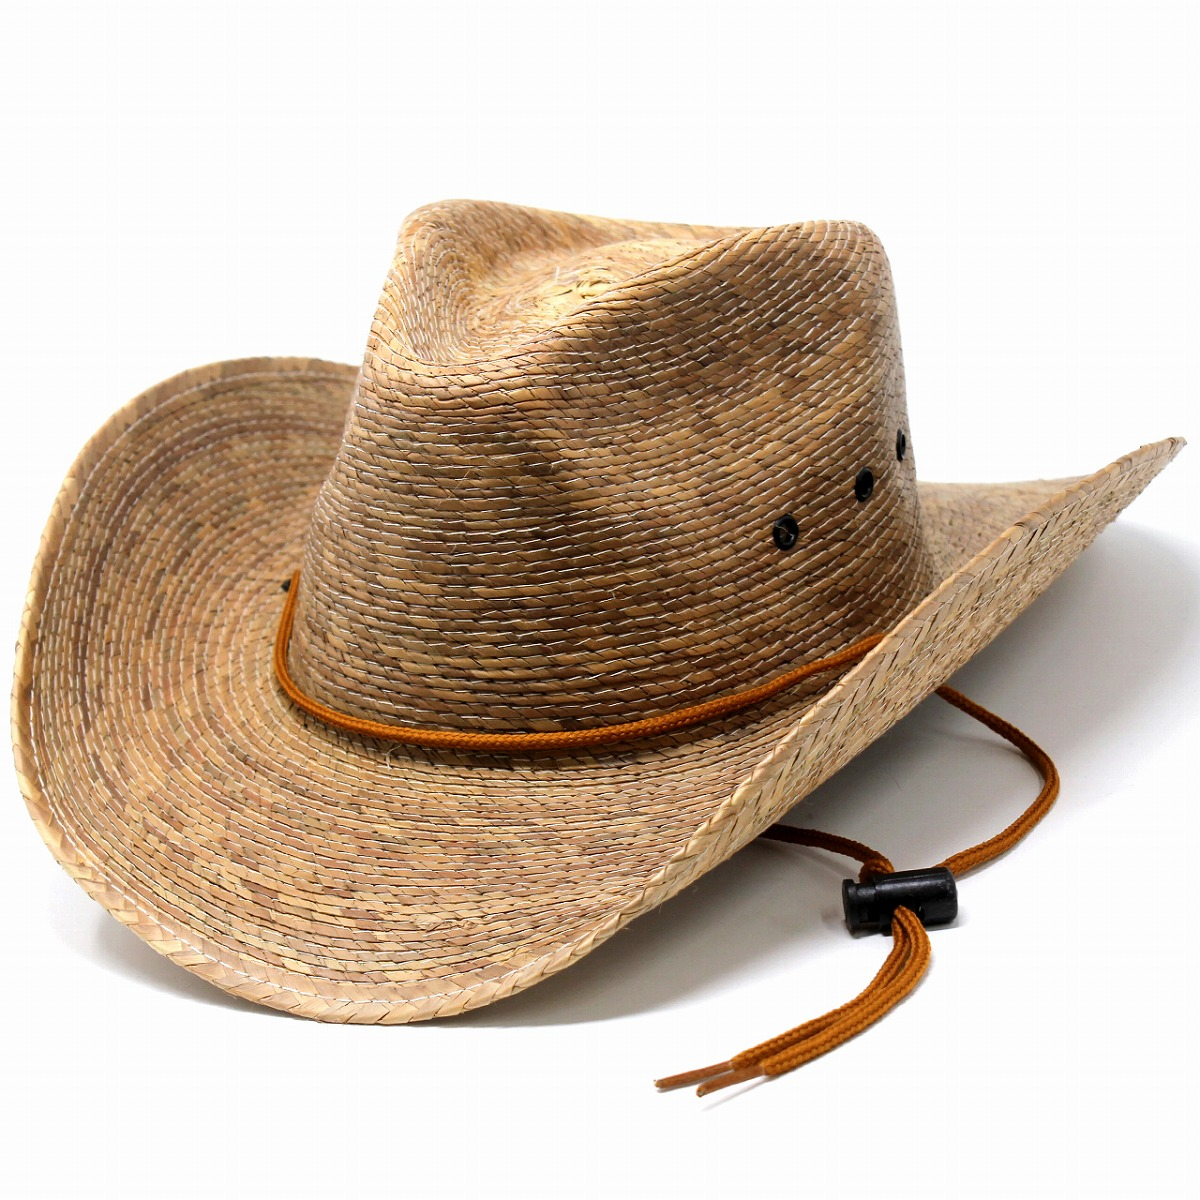 DPC straw hat ストローハットメンズカウボーイハットドーフマン hat broad-brimmed ten-gallon hat palm  blade Lady s hat Shin pull DORFMAN PACIFIC DPC1921 ... 93d347e6af5